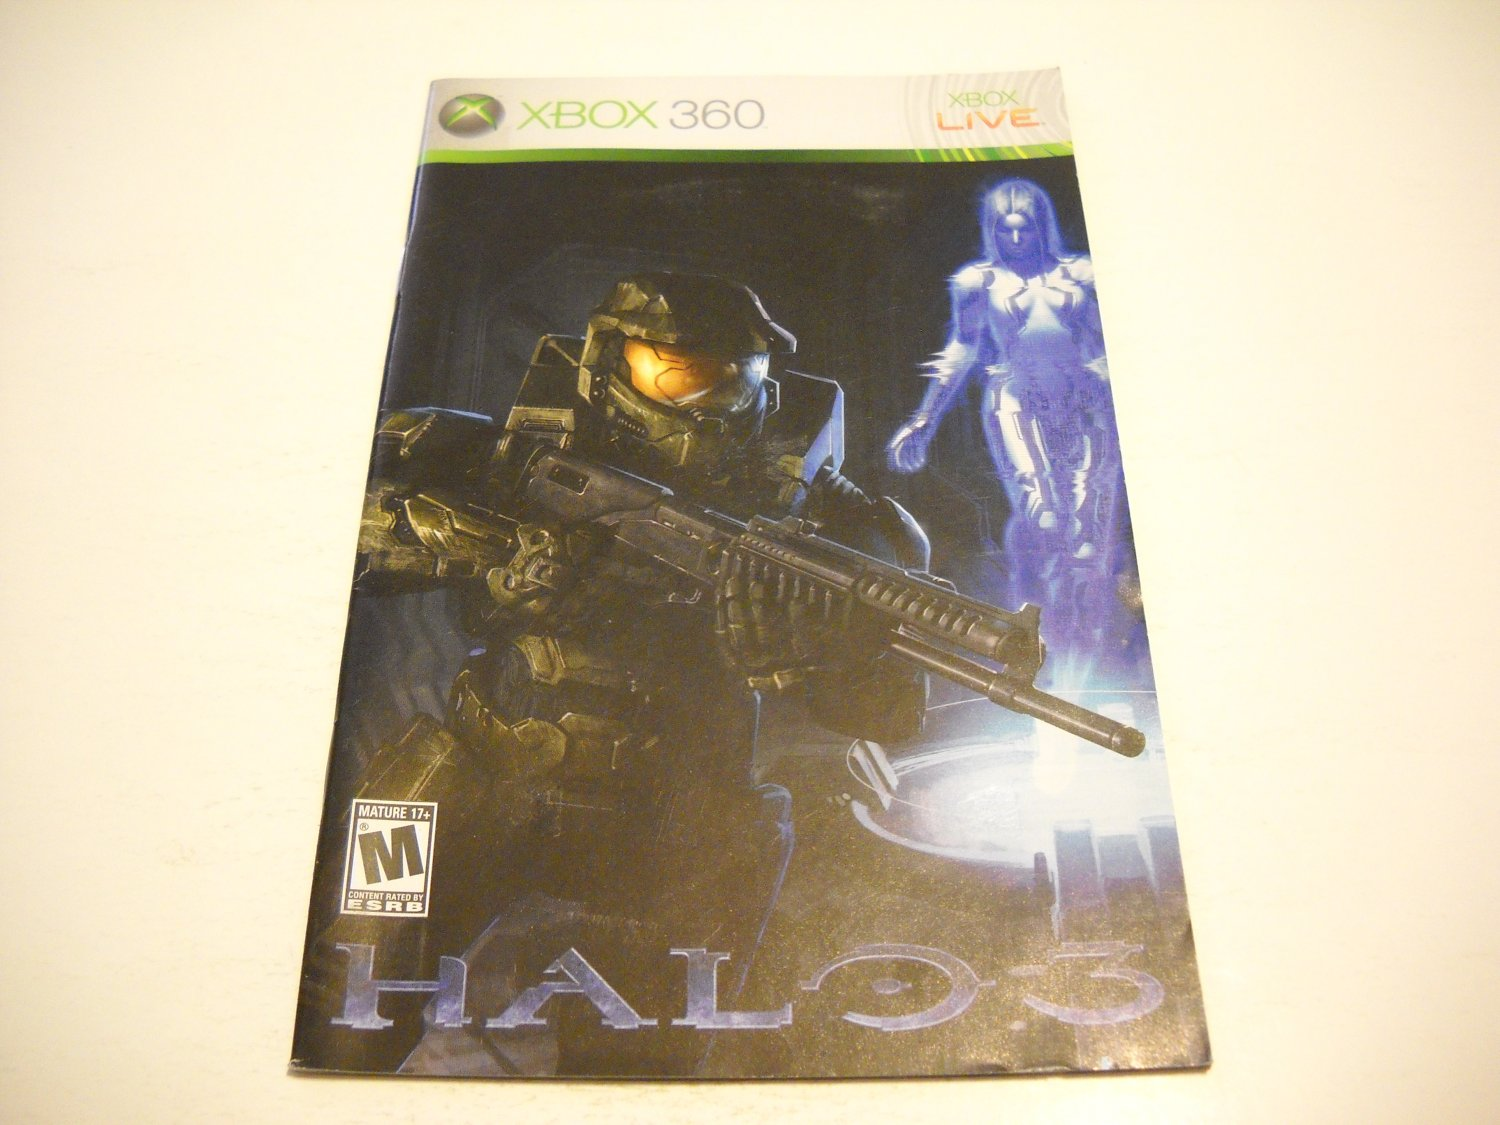 Manual ONLY ~  for Halo 3   - Xbox 360 Instruction Booklet